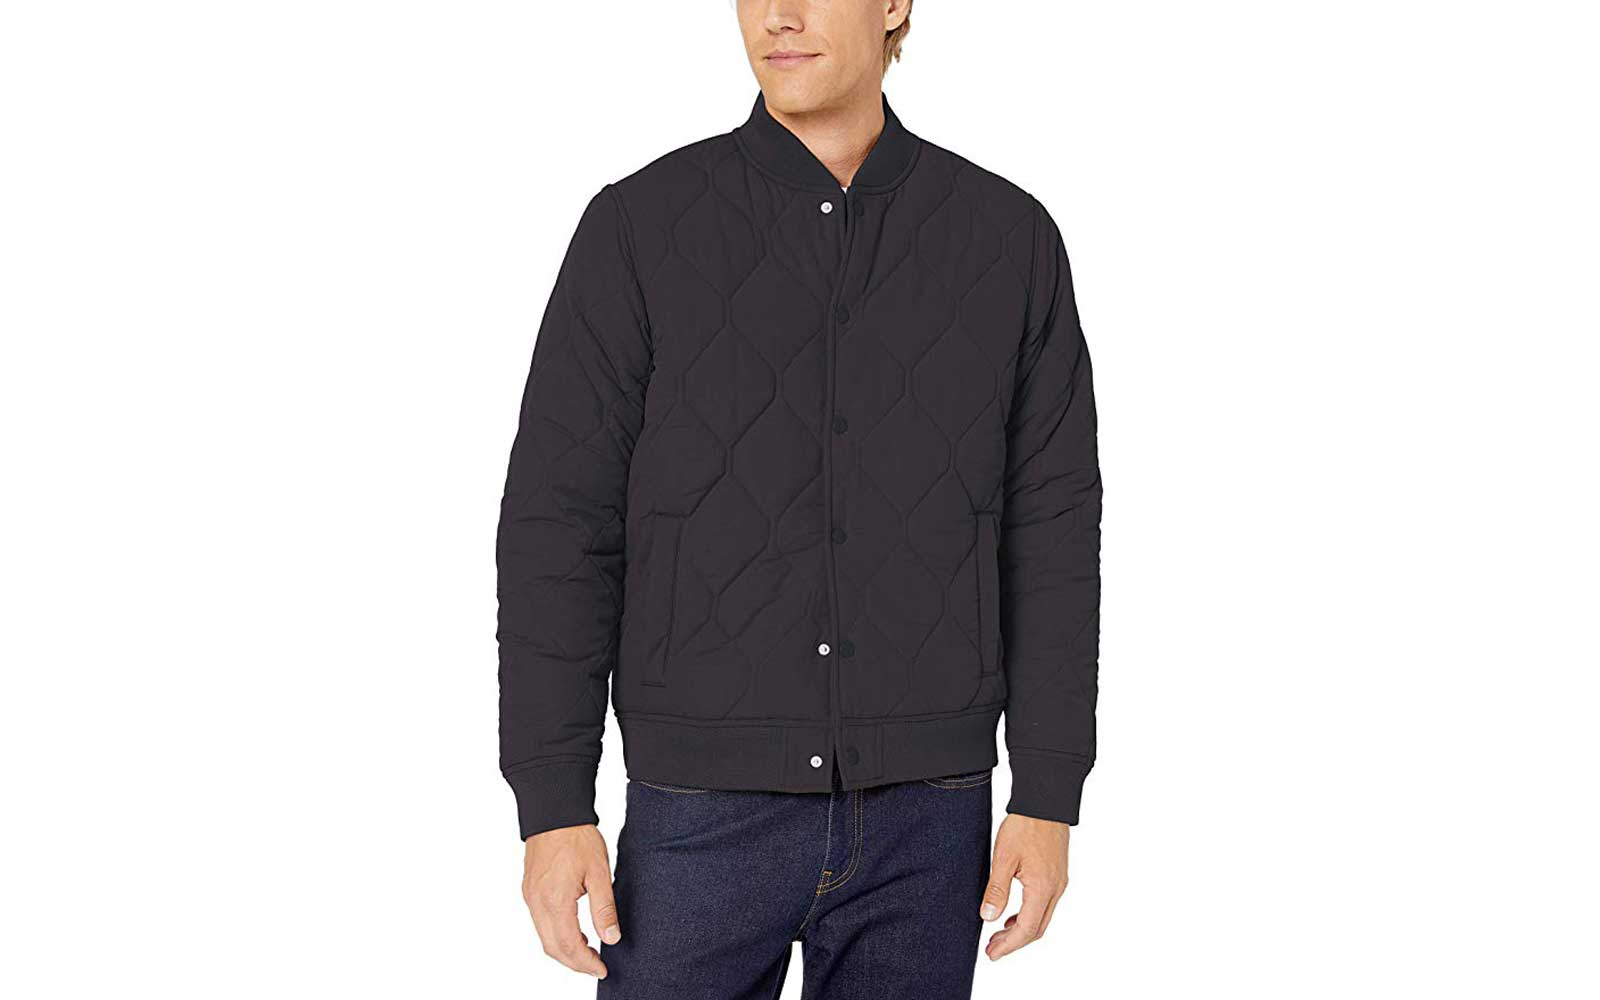 Black Men's Bomber Jacket